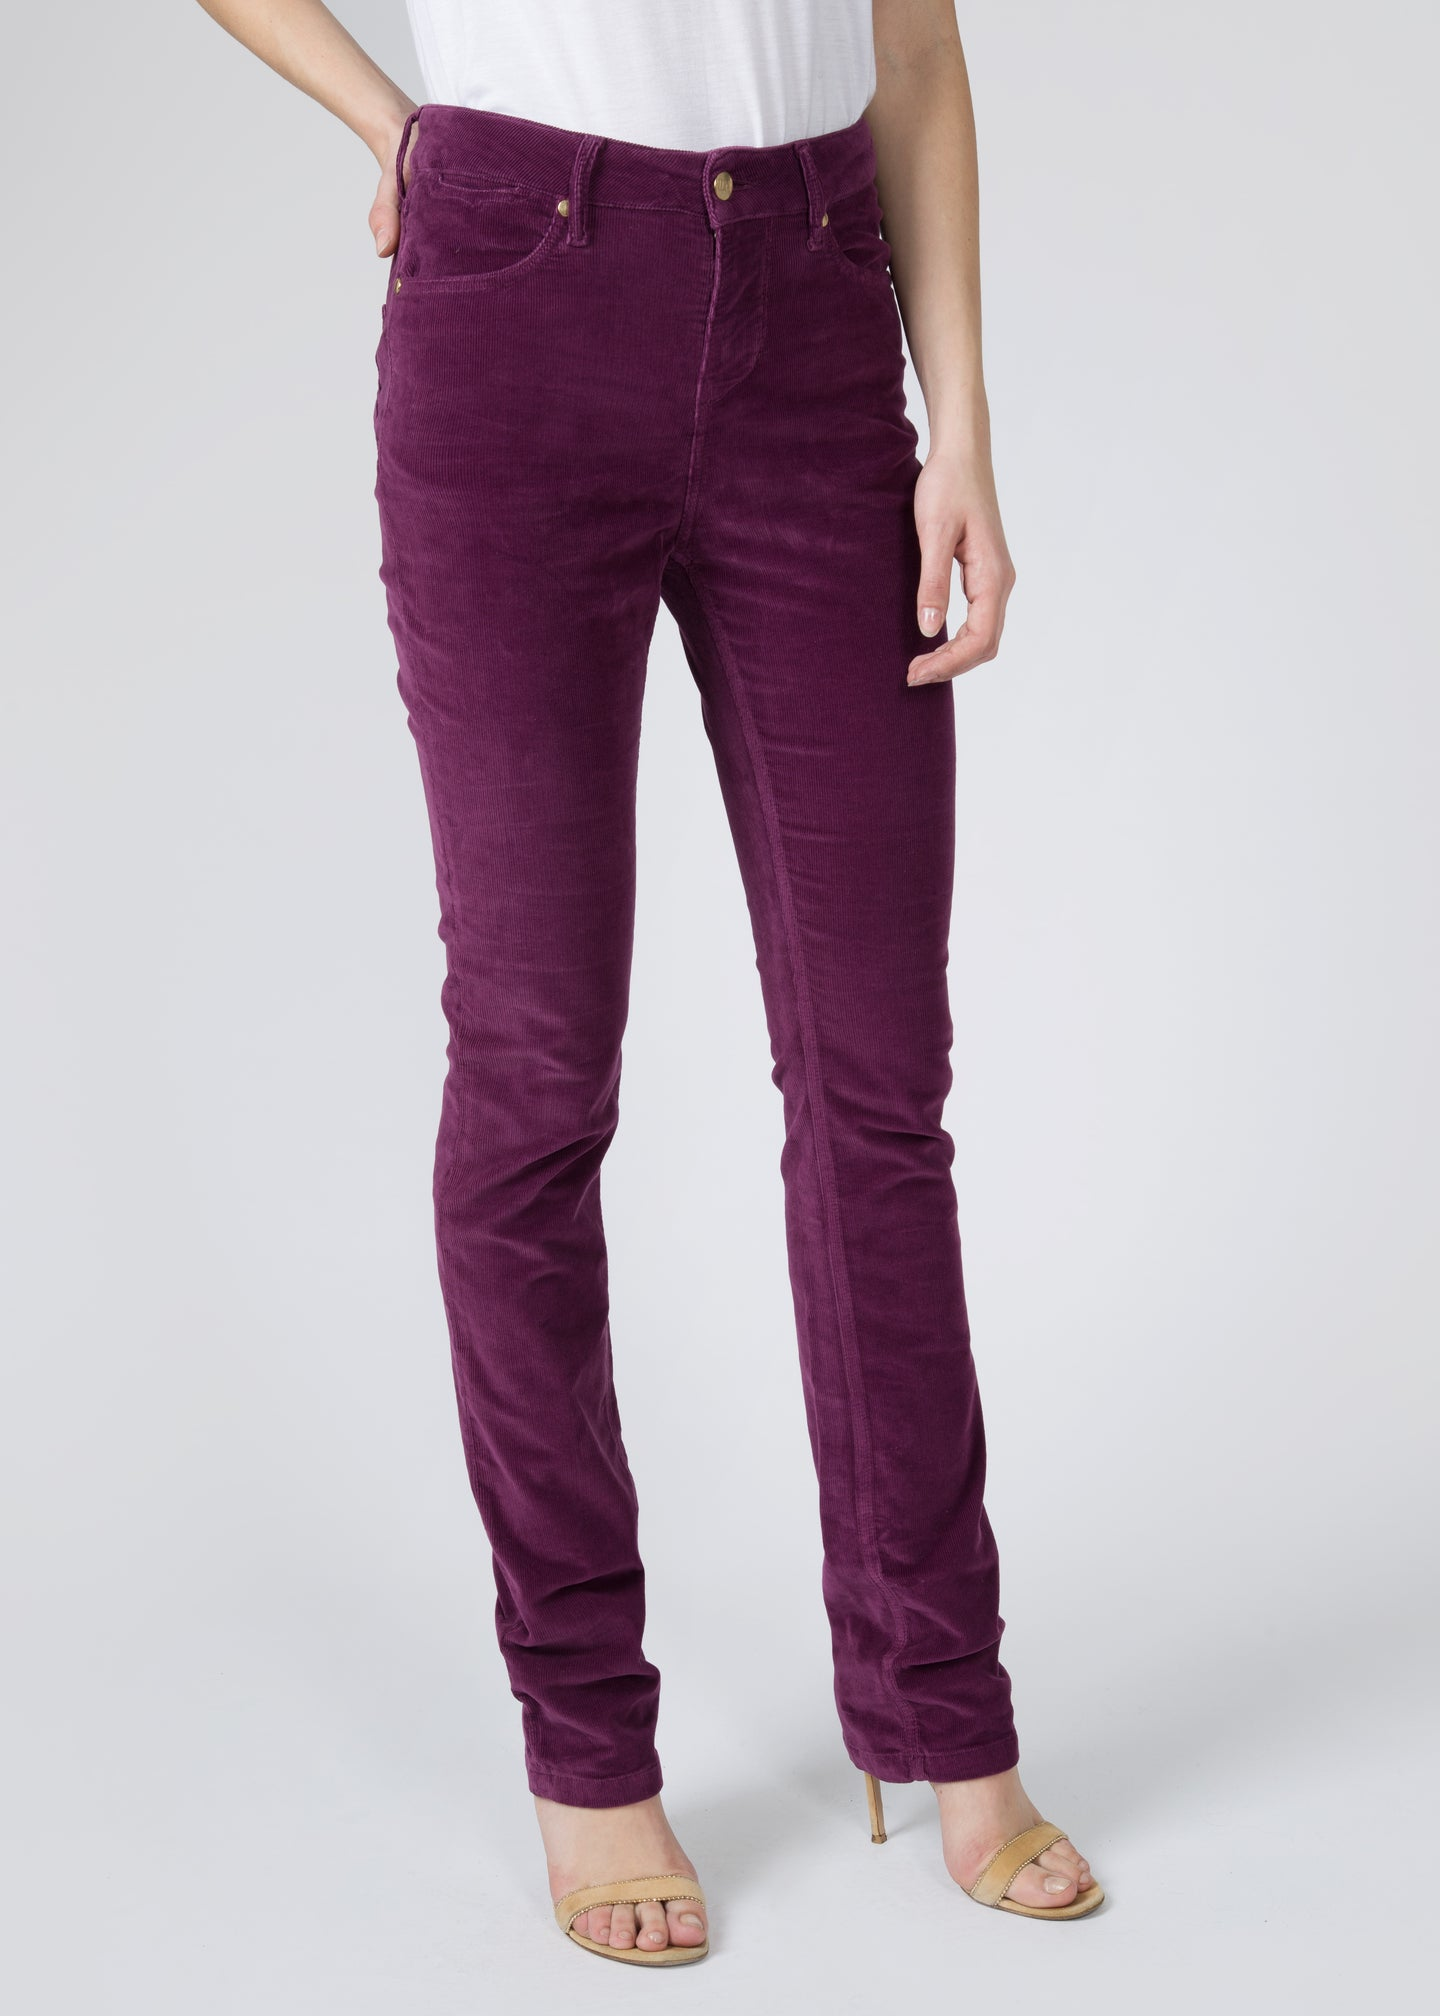 Jeanie Cigarette Leg Jeans - Corded Grape Juice